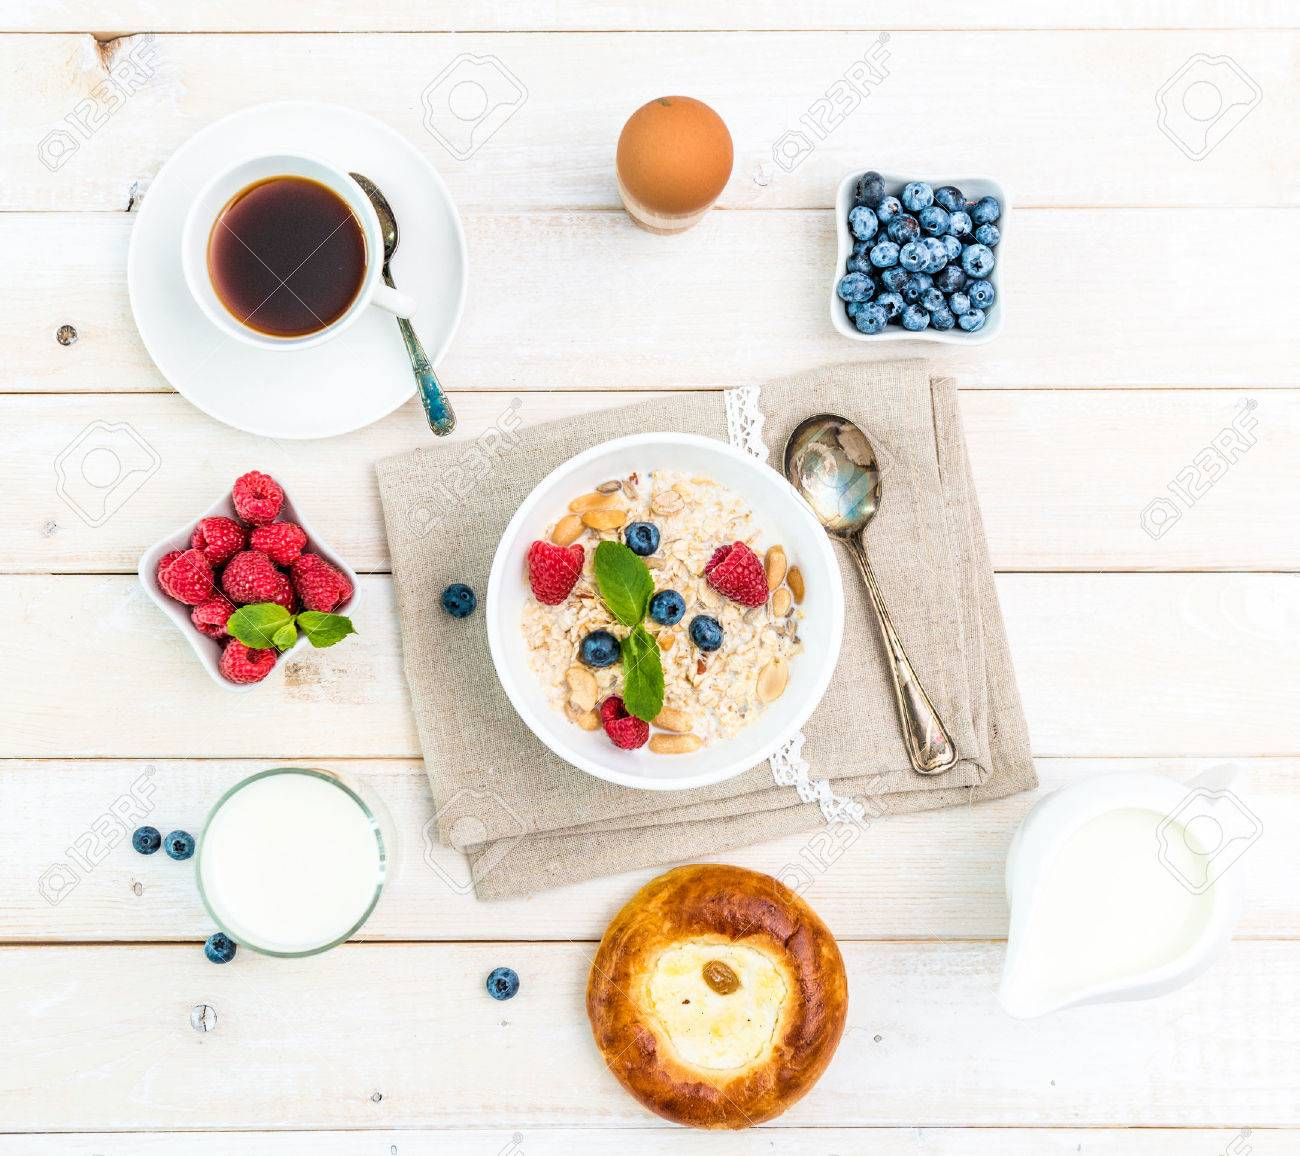 healthy fitness breakfast with muesli and berries - 45297383